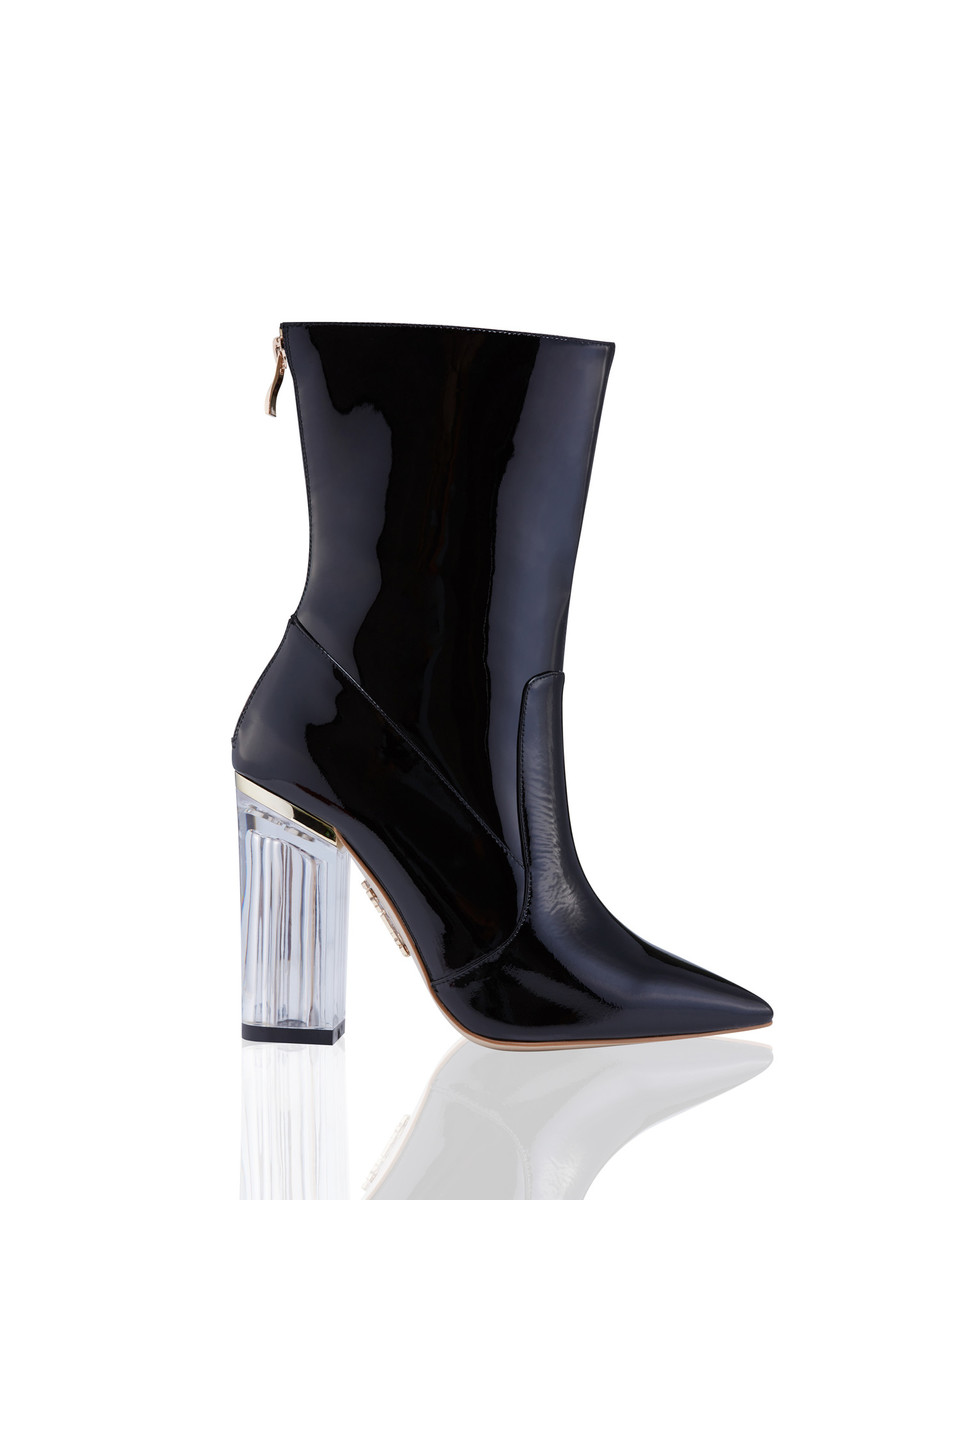 VISION Patent Black Zip Up Booties with Lucite Heels